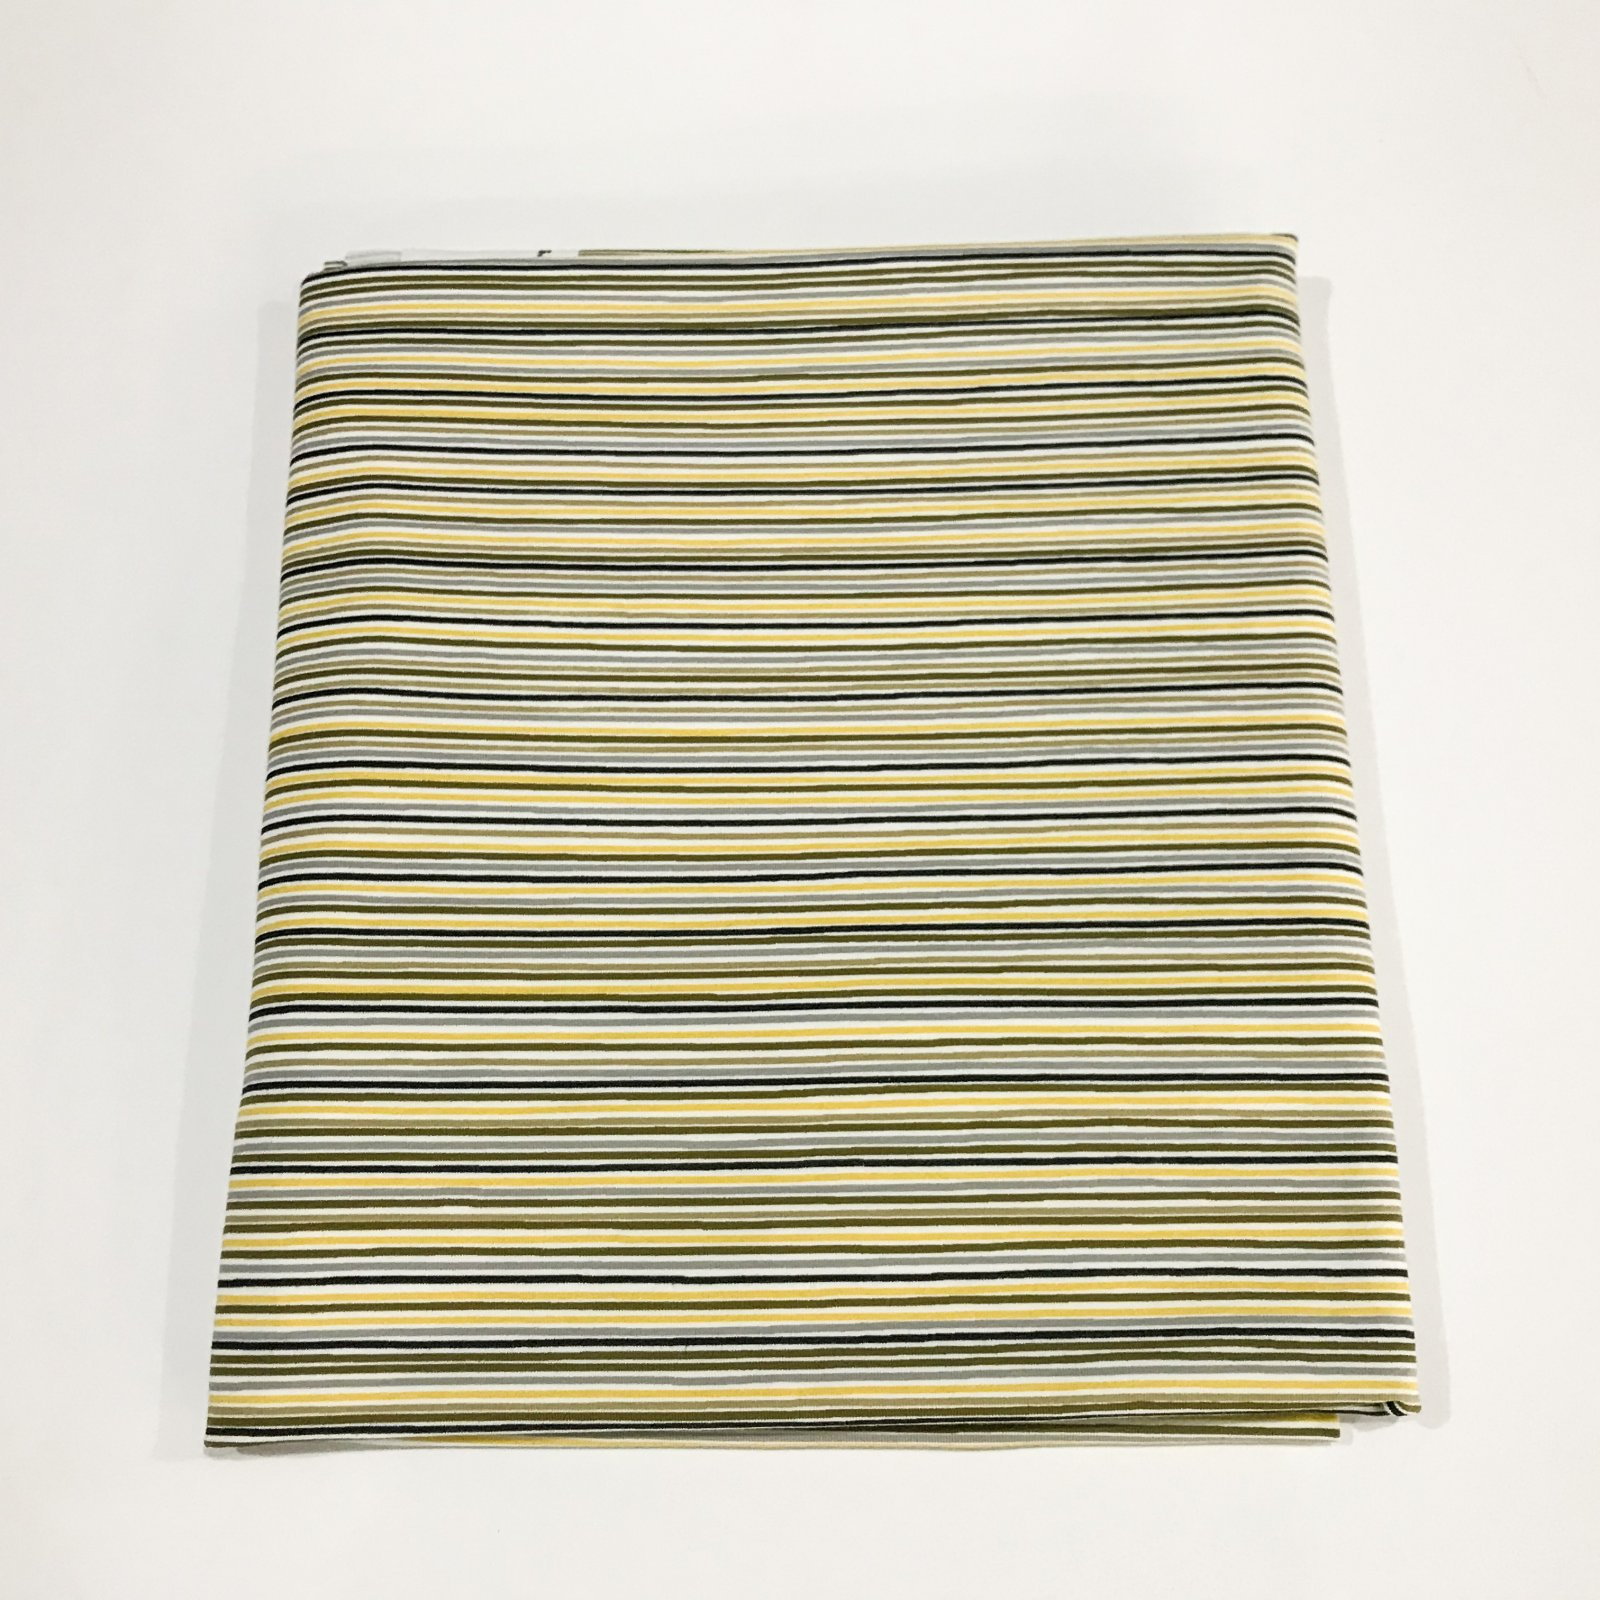 1 1/4 yard - Cotton Knit - Stripe in Gold, Olive, Black, Gray and White